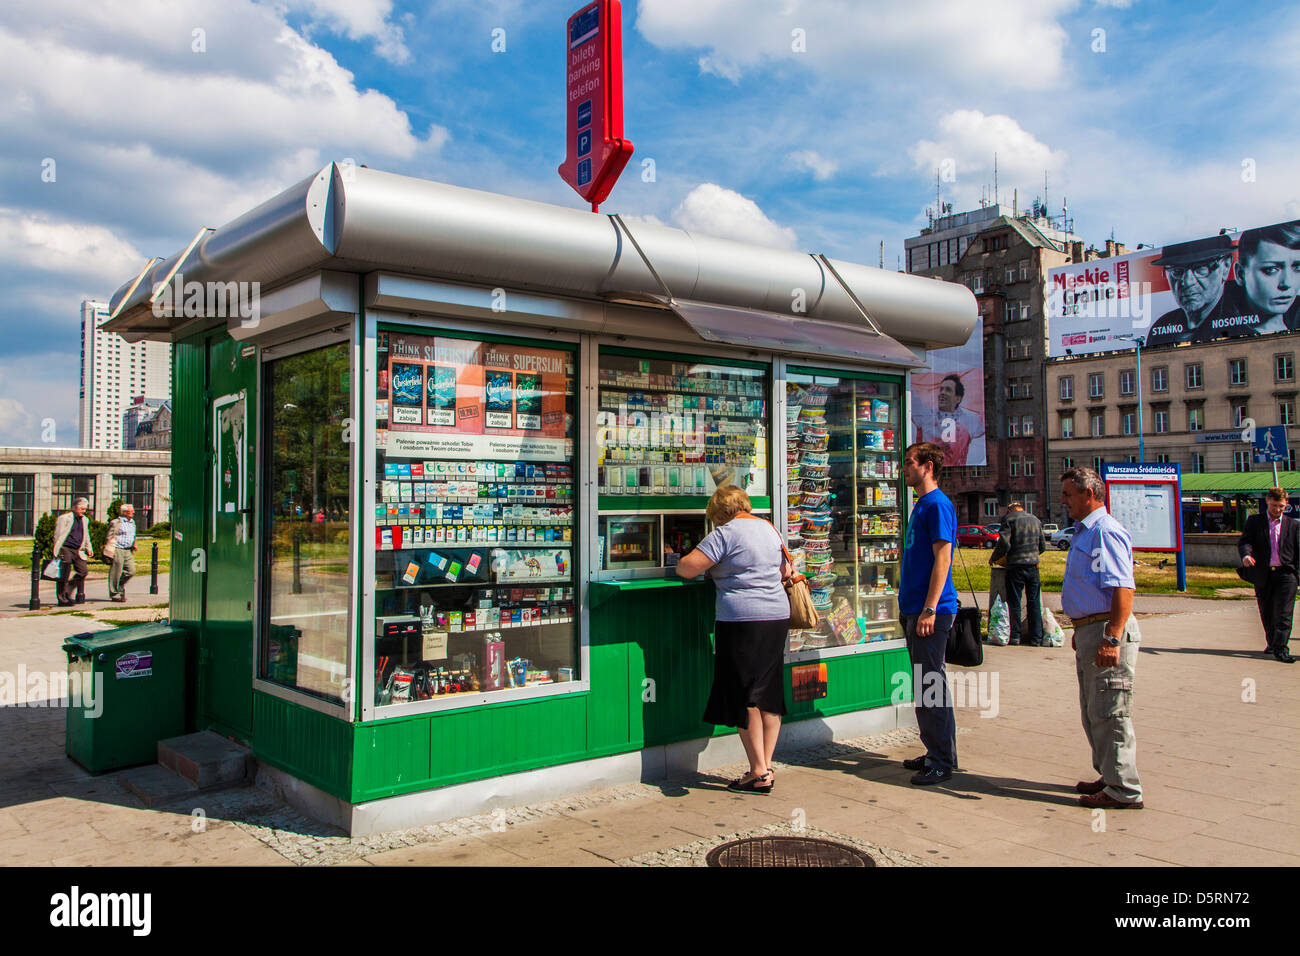 People at a typical kiosk selling tobacco, tickets and magazines in downtown Warsaw, Poland. - Stock Image